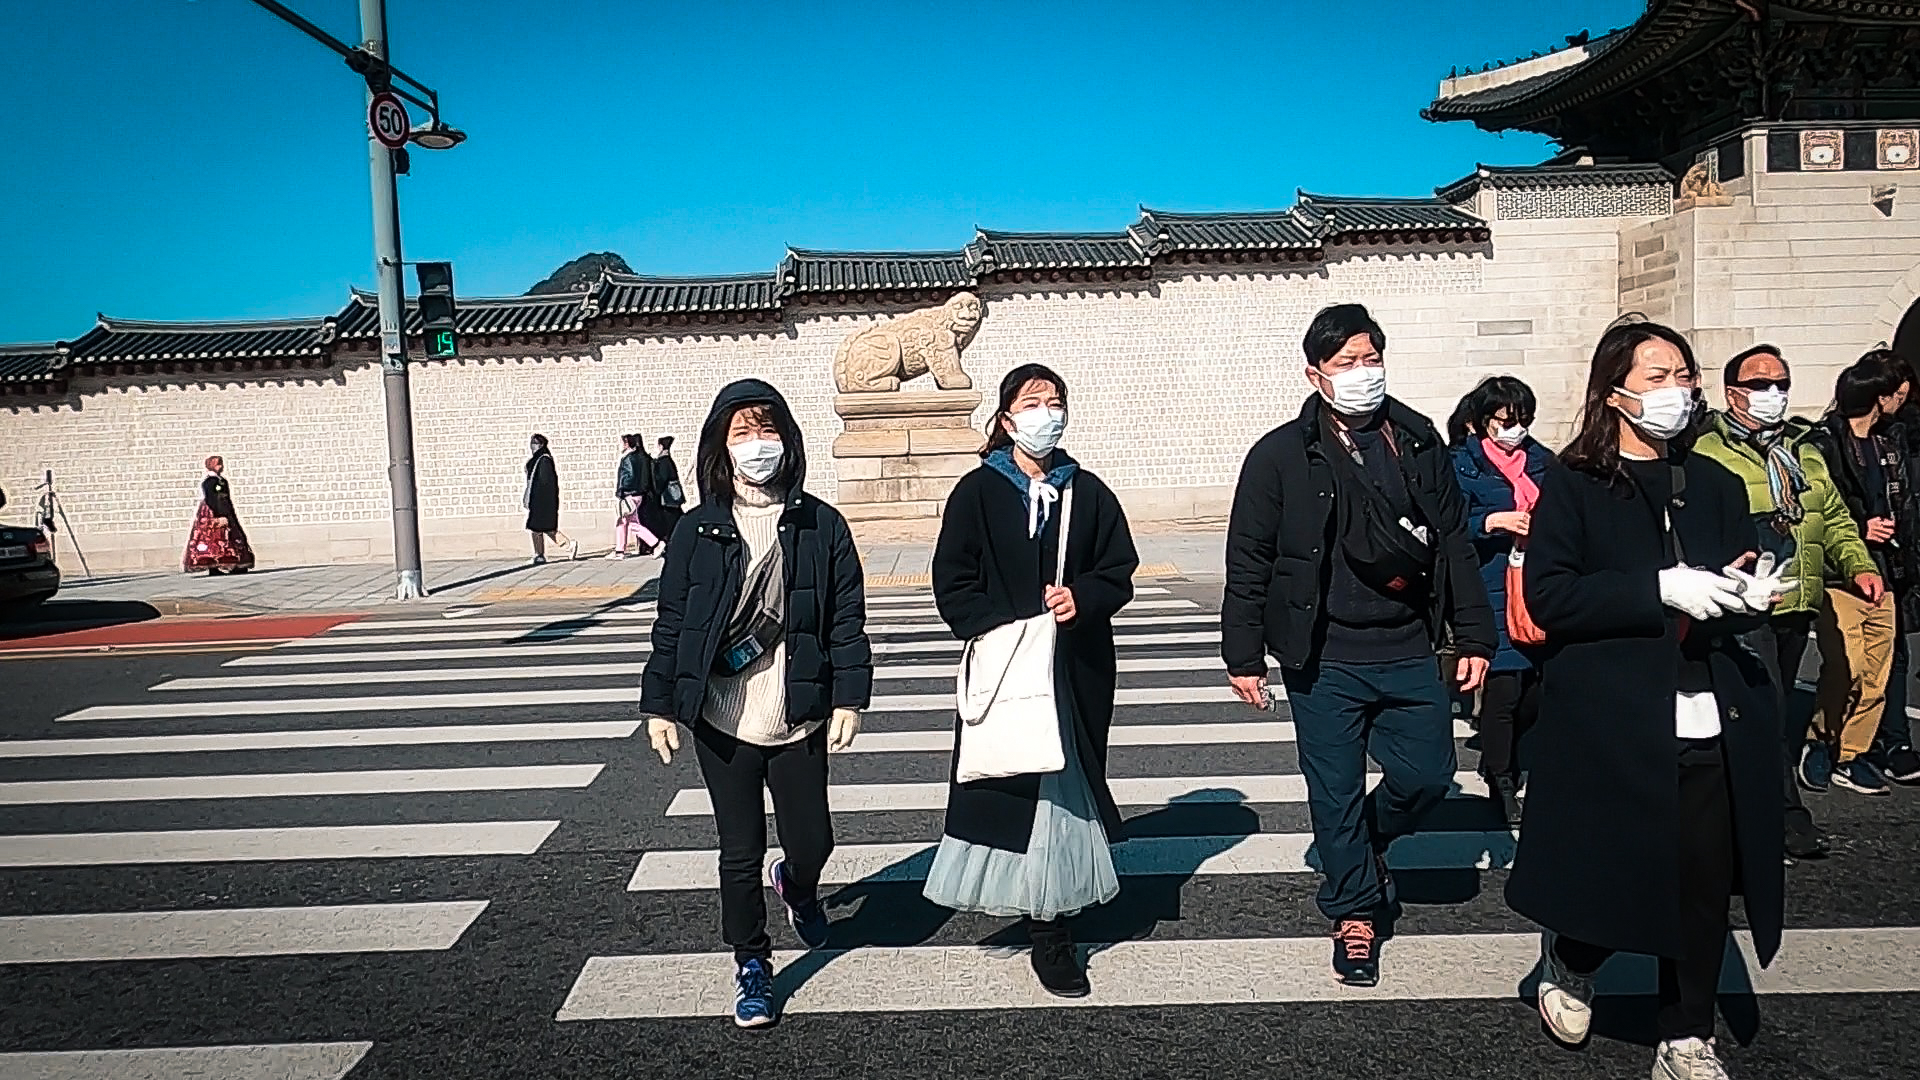 Those choosing to go out in public are sure to wear a mask to protect themselves against catching the Coronavirus in South Korea.